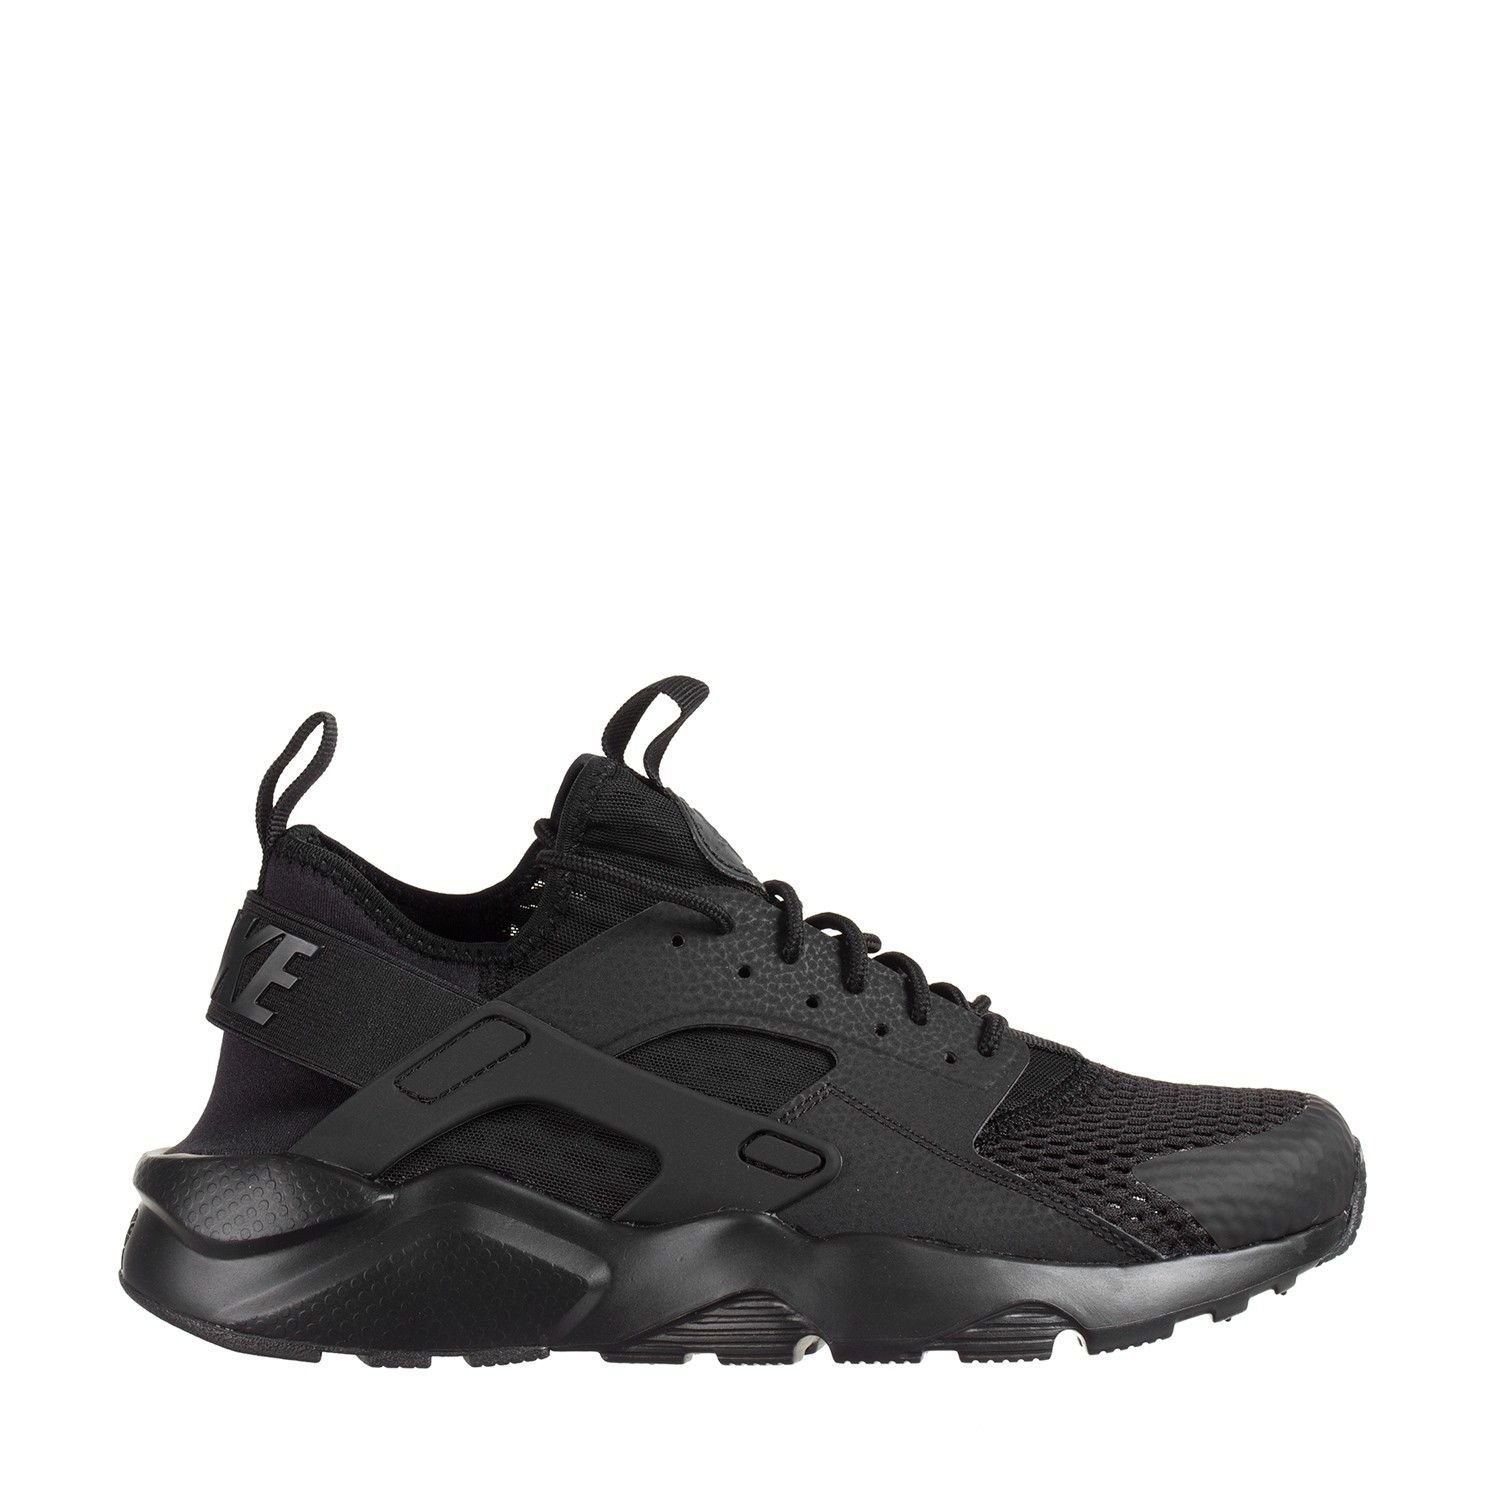 Air Huarache Run Ultra Breeze NIKE Air Huarache Run Ultra Breeze